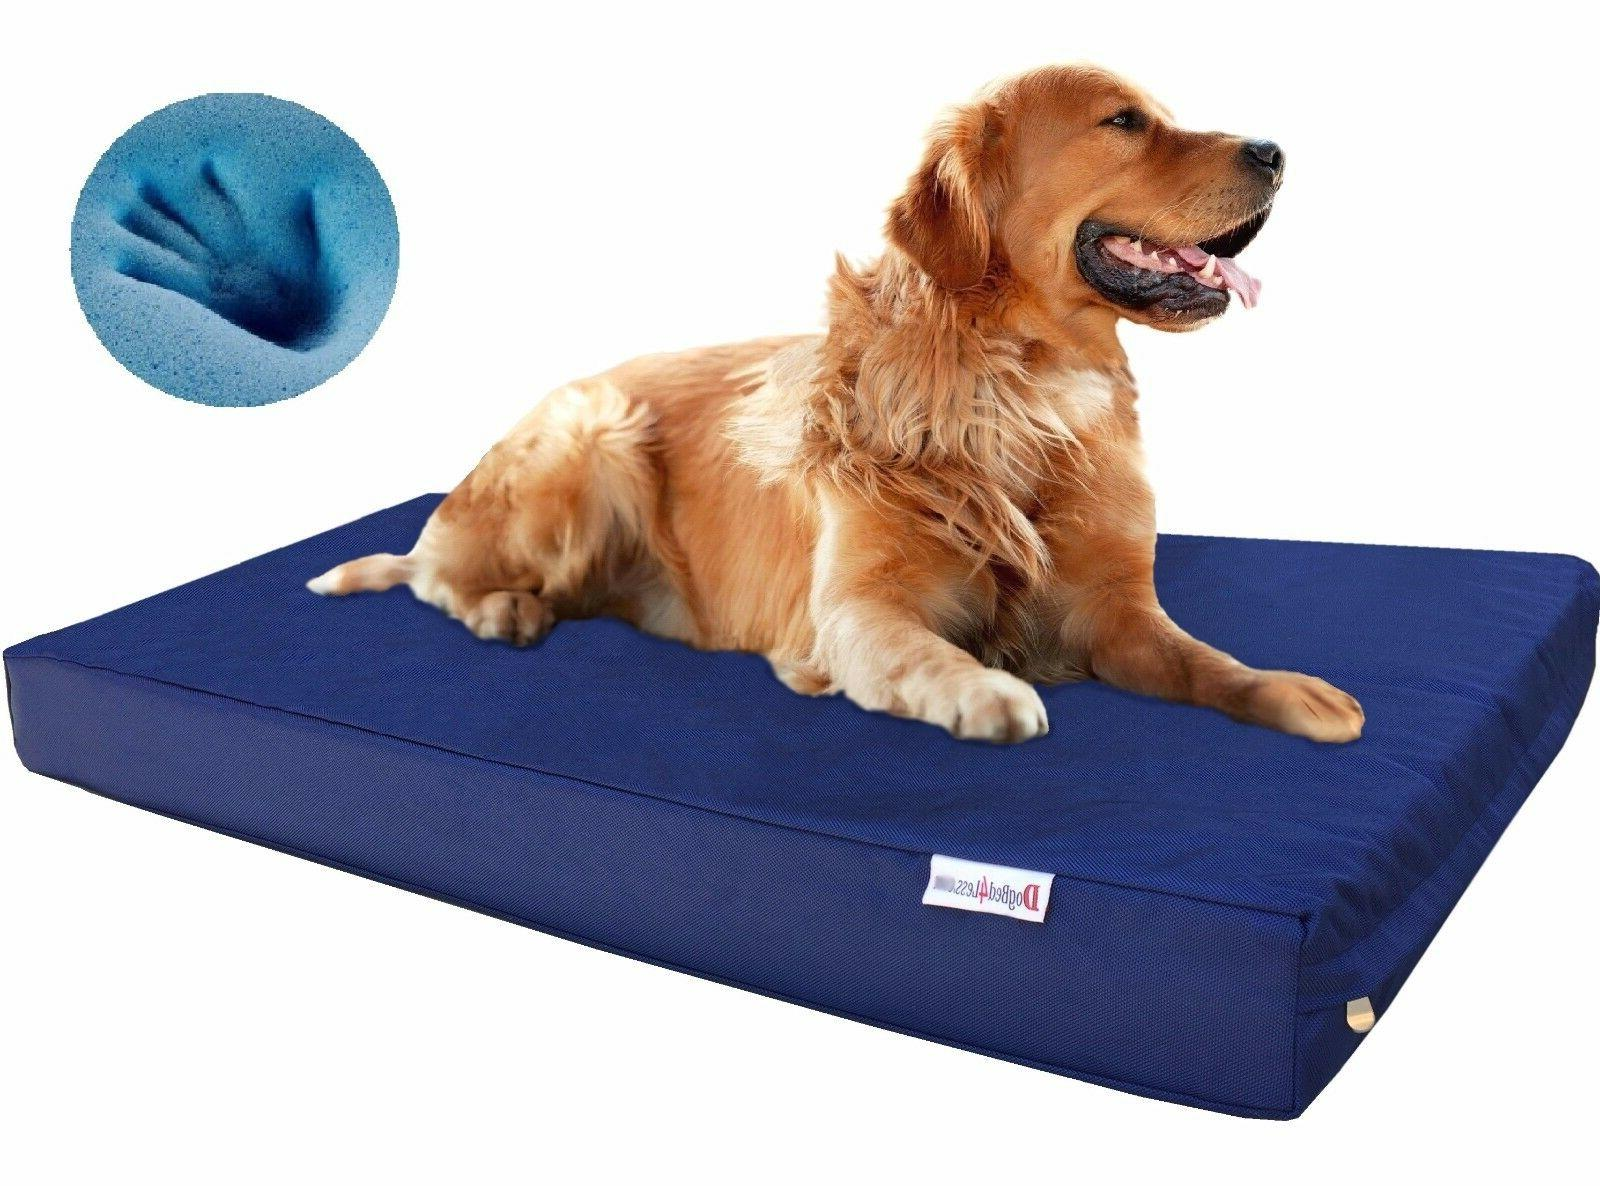 1680 Ballistic Strong Waterproof Chew Resist Memory Foam Pet